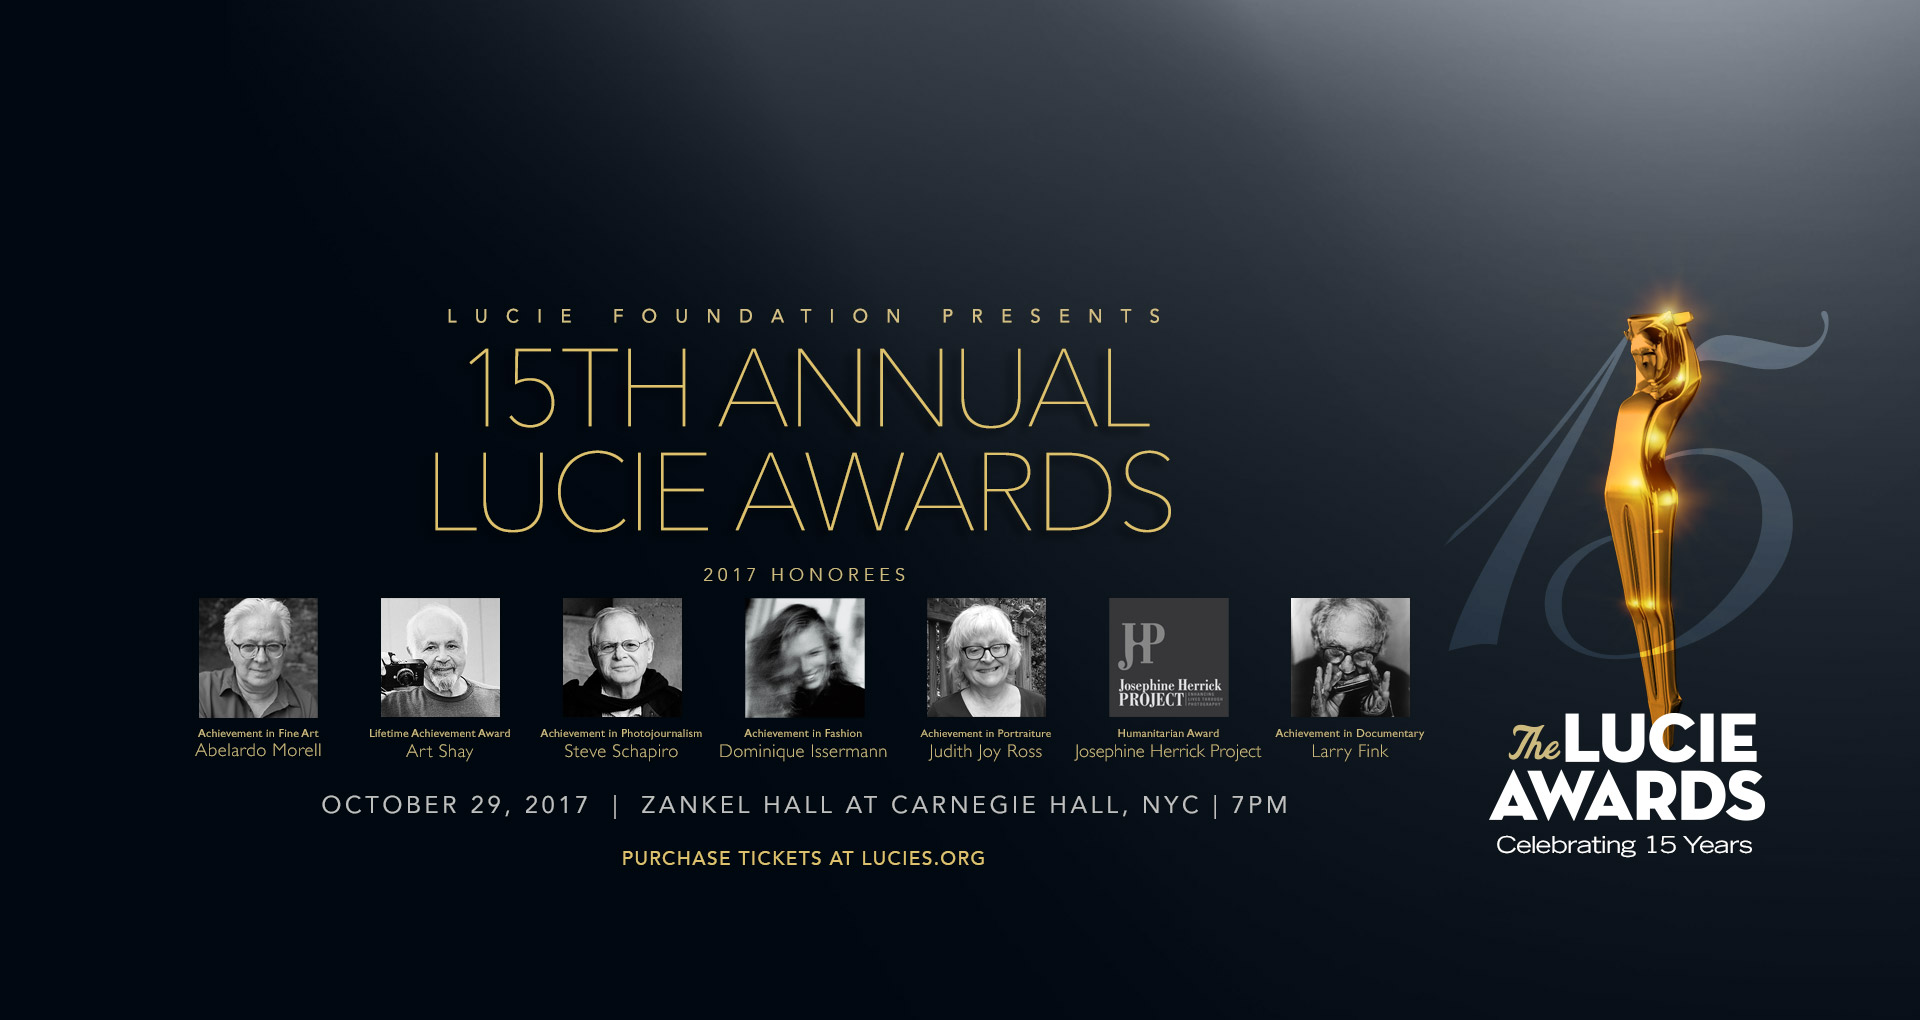 15th Annual Lucie Awards